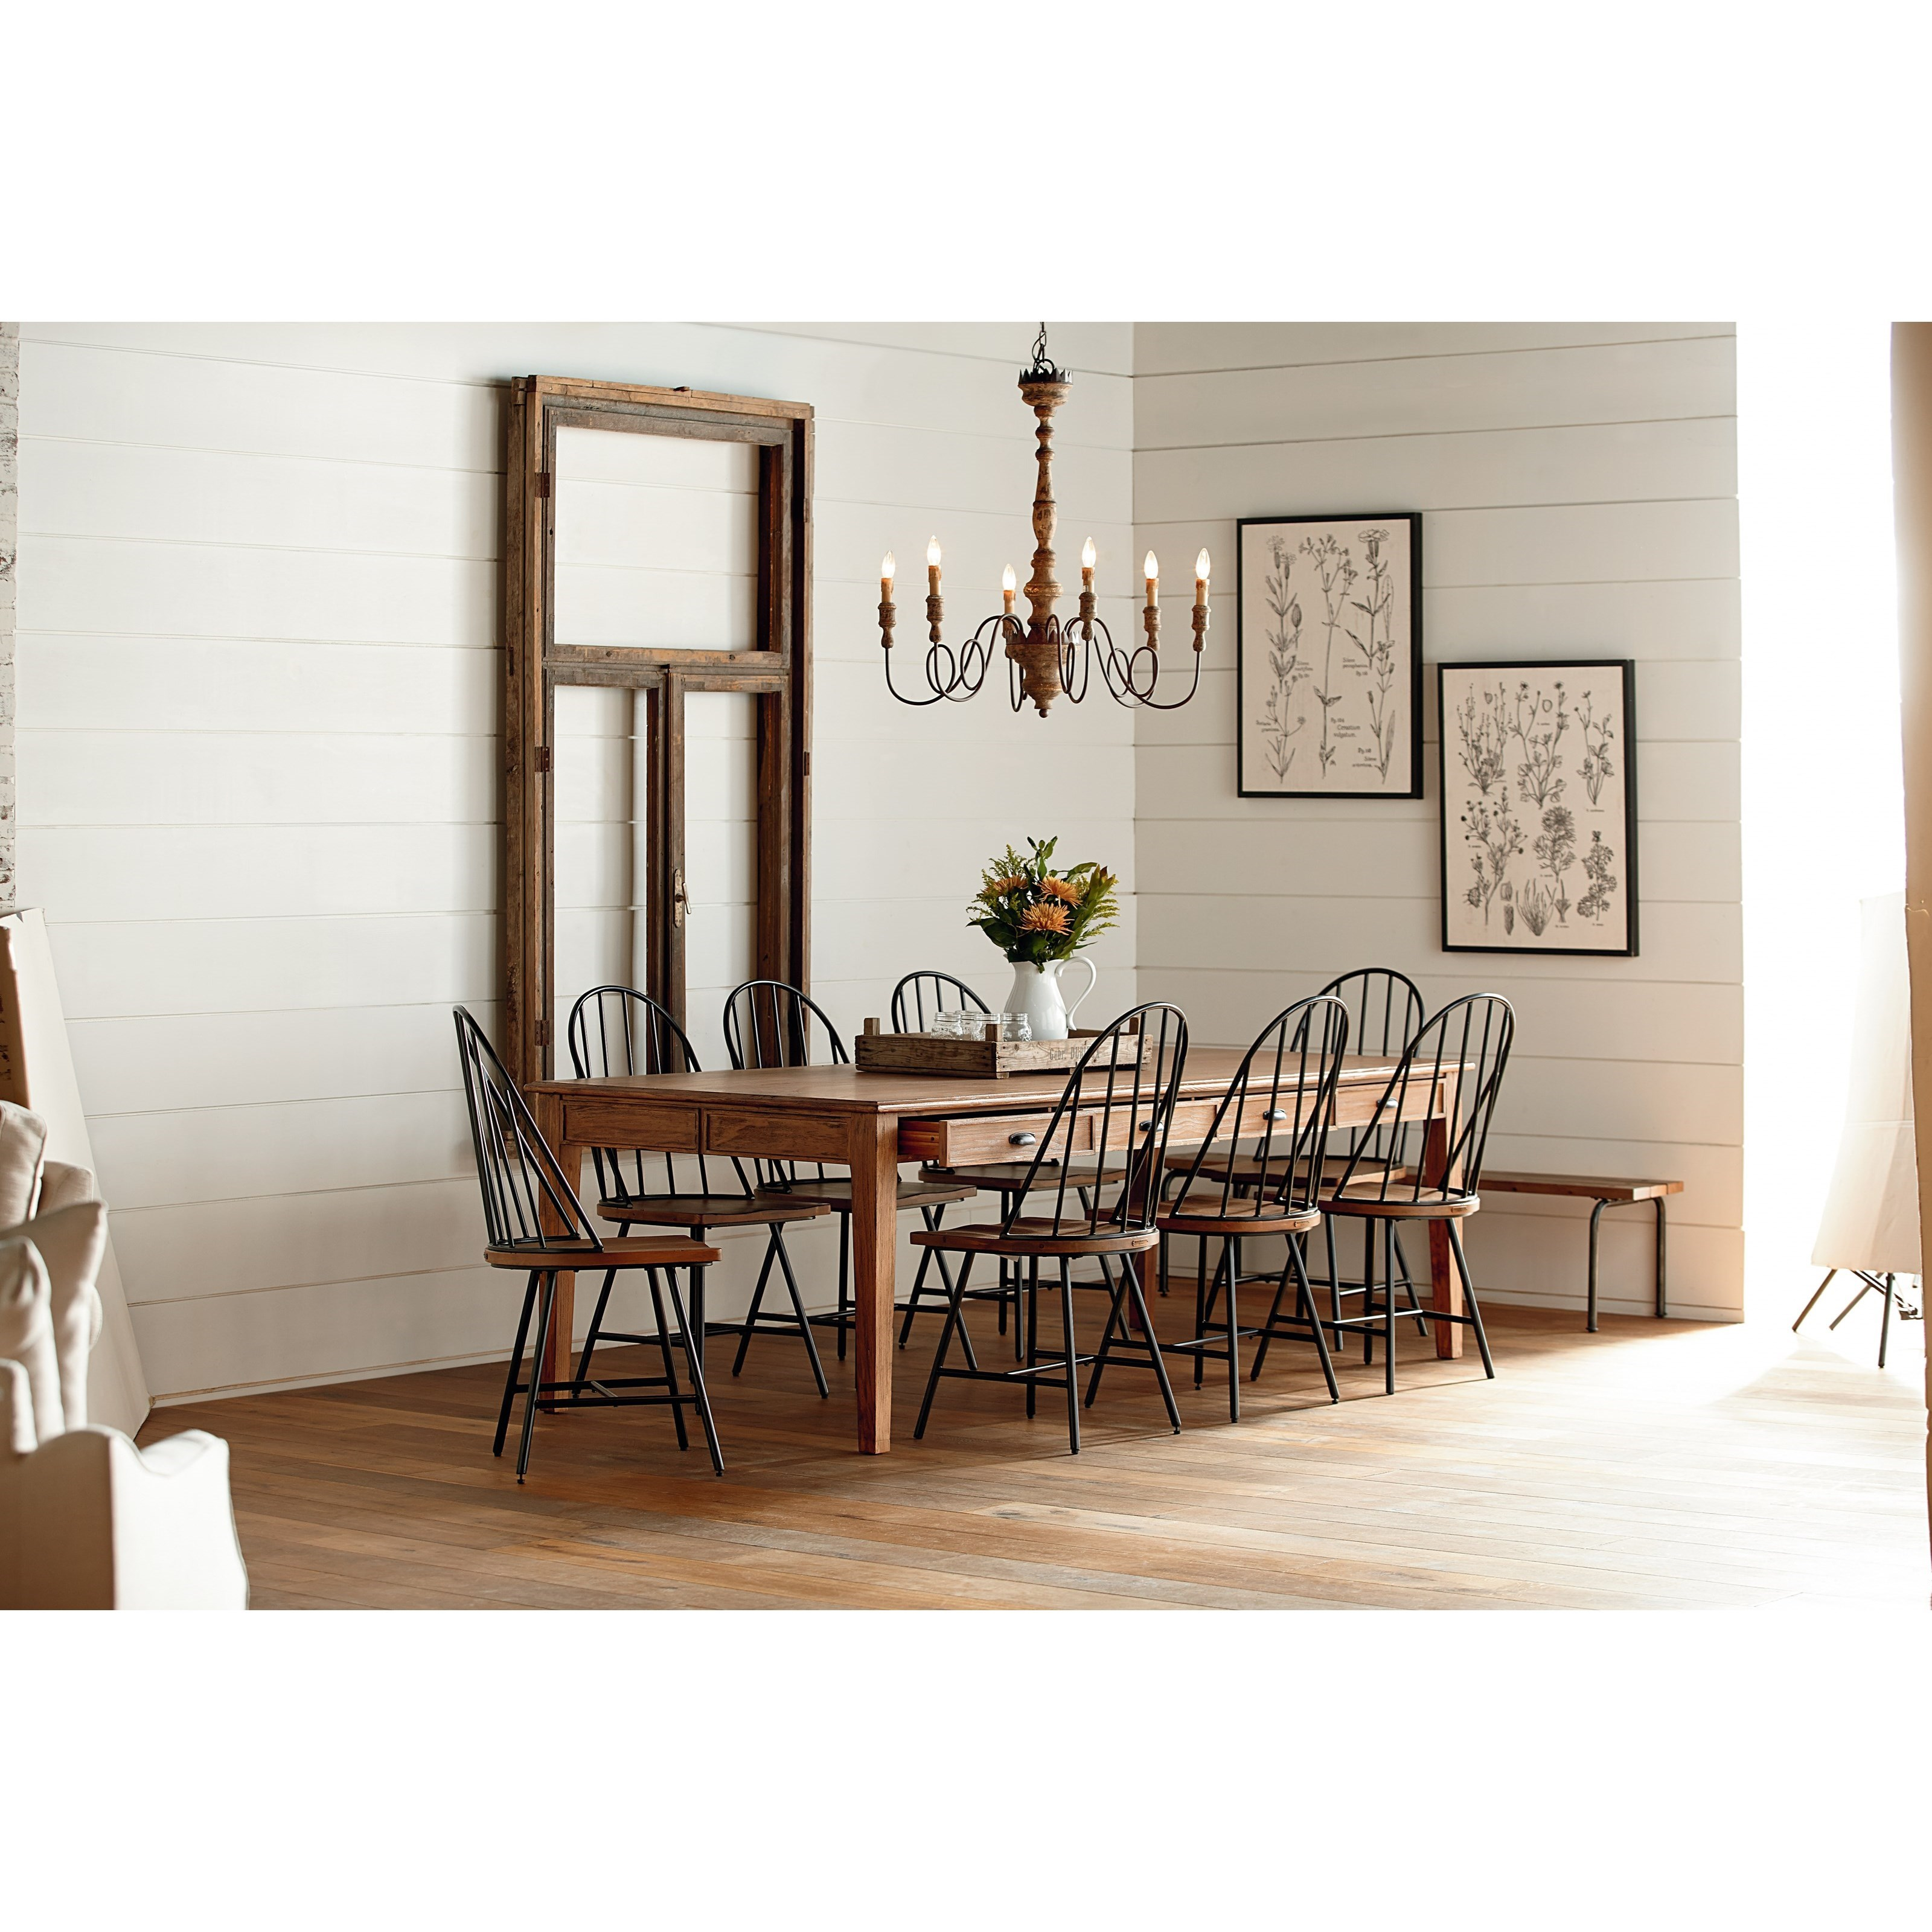 10 Piece Dining Set with Hoop Windsor Chairs, Bench, and Storage ...